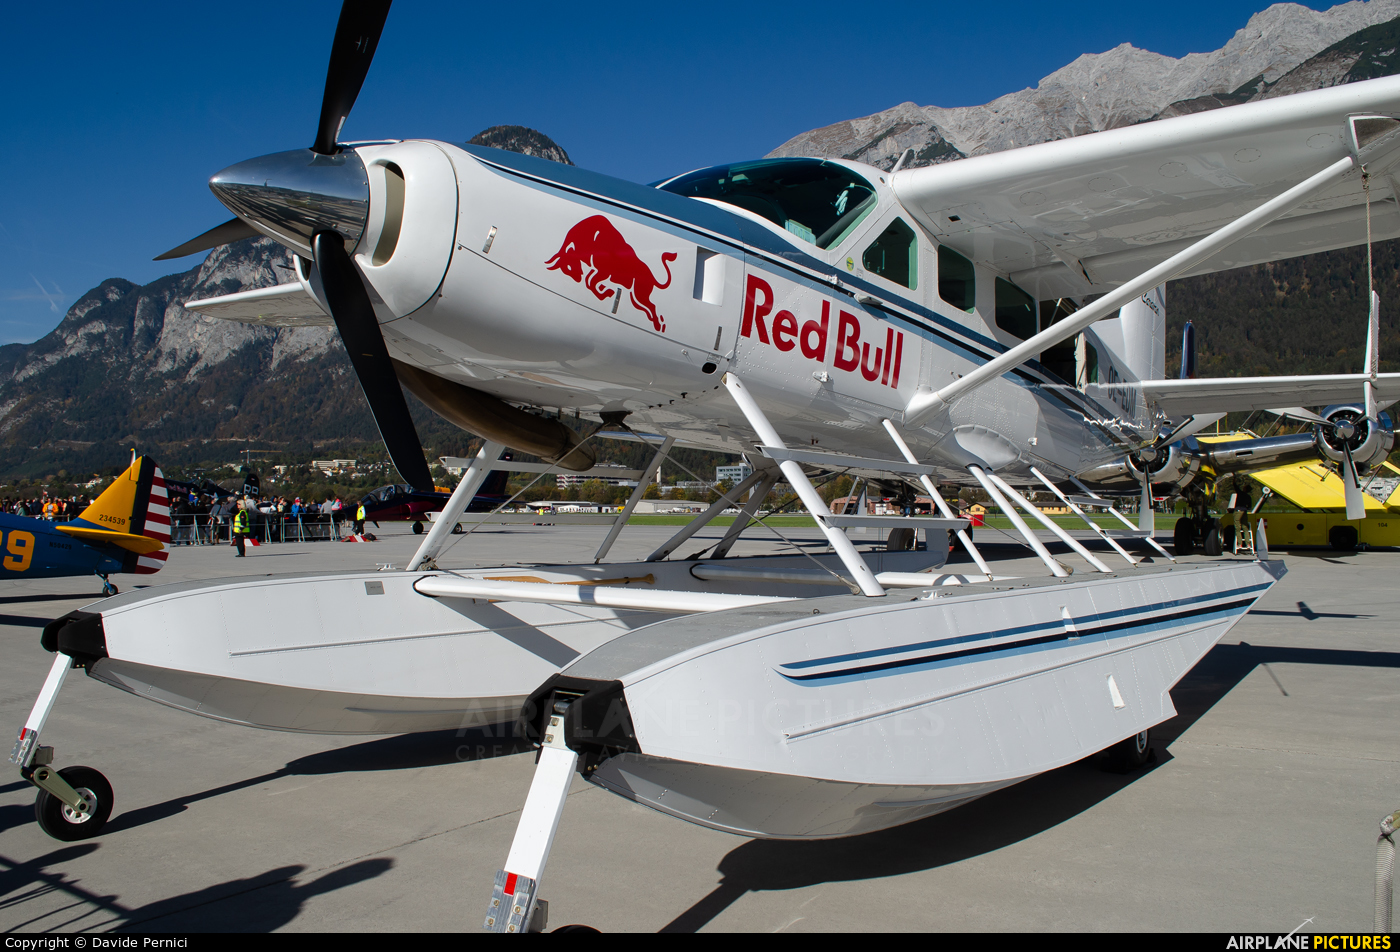 The Flying Bulls OE-EDM aircraft at Innsbruck